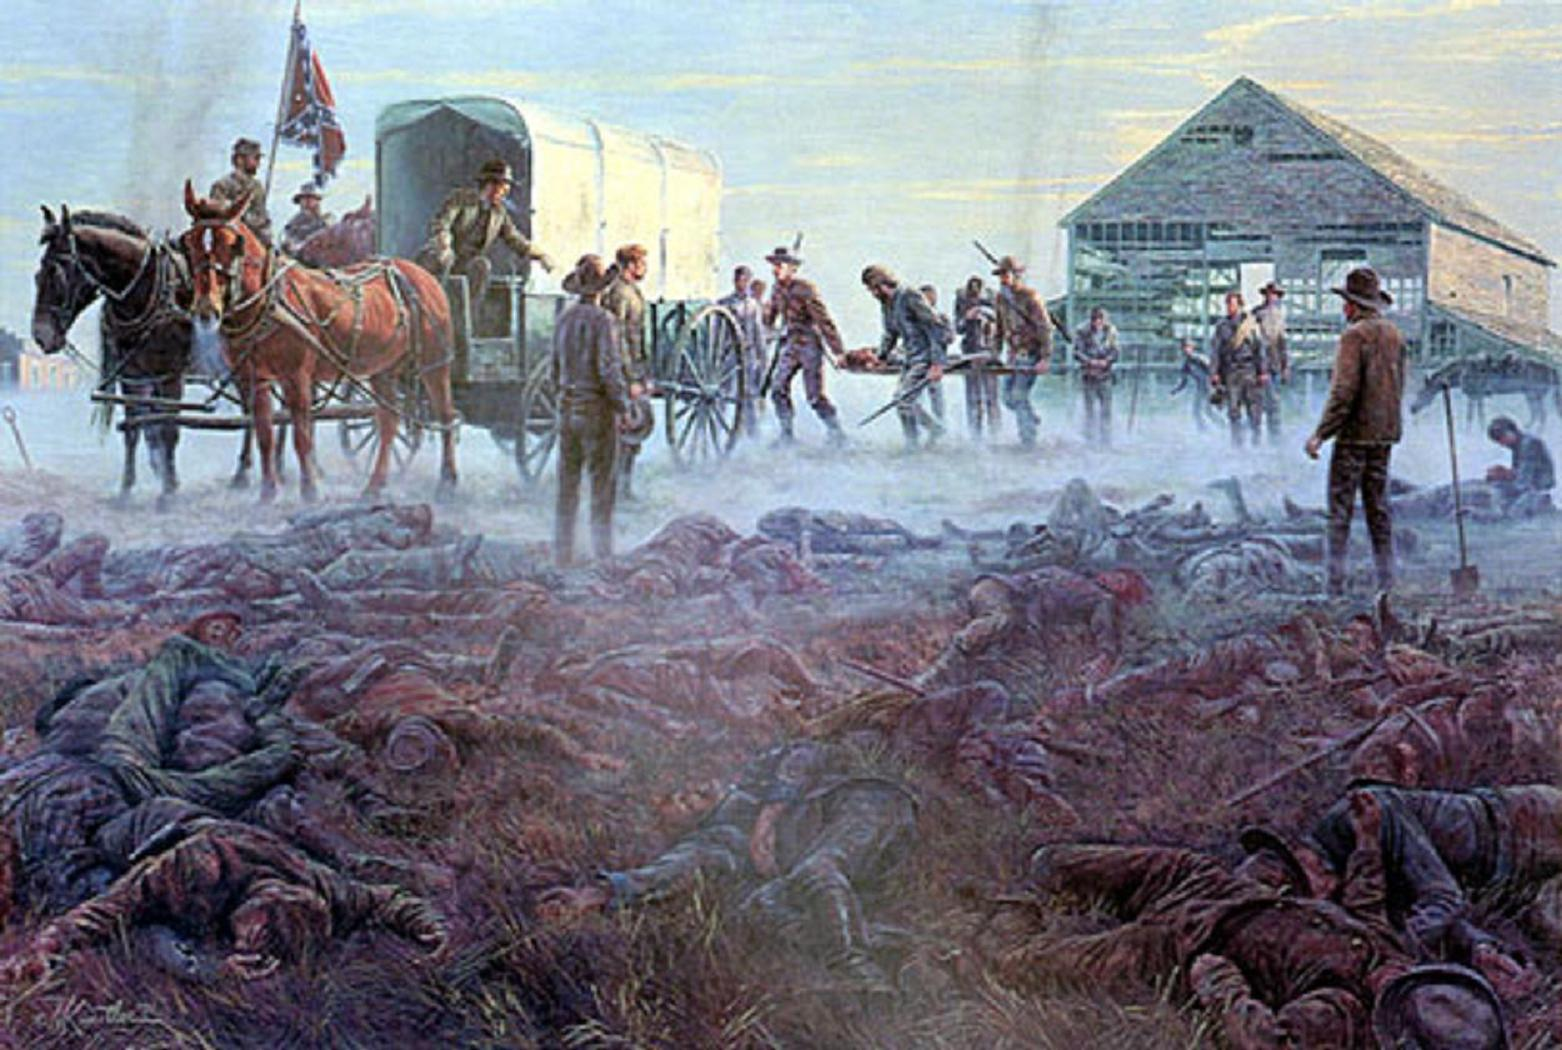 Aftermath of the Battle of Franklin